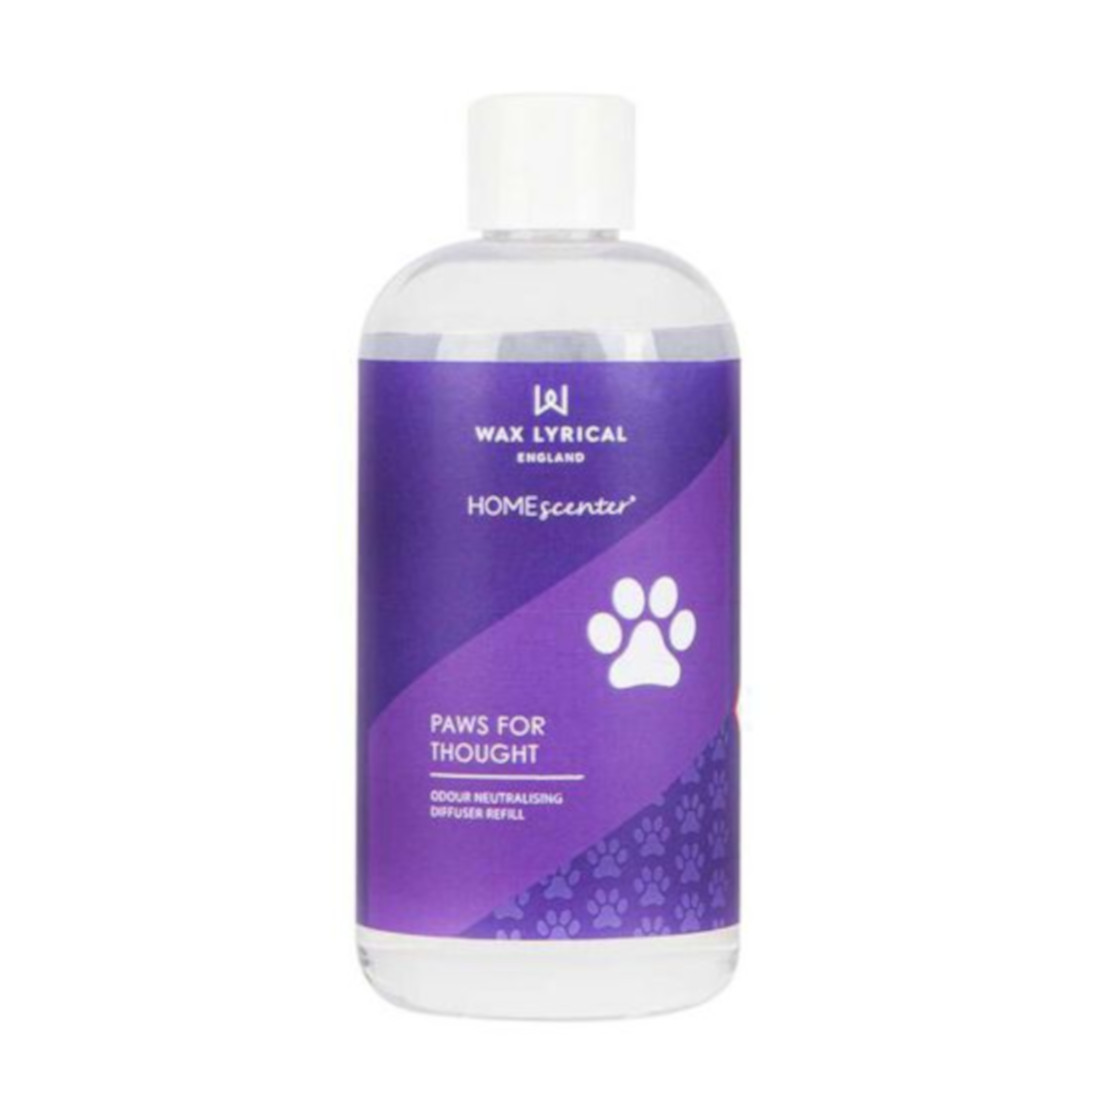 Wax Lyrical Paws for Thought 200ml Reed Diffuser Refill